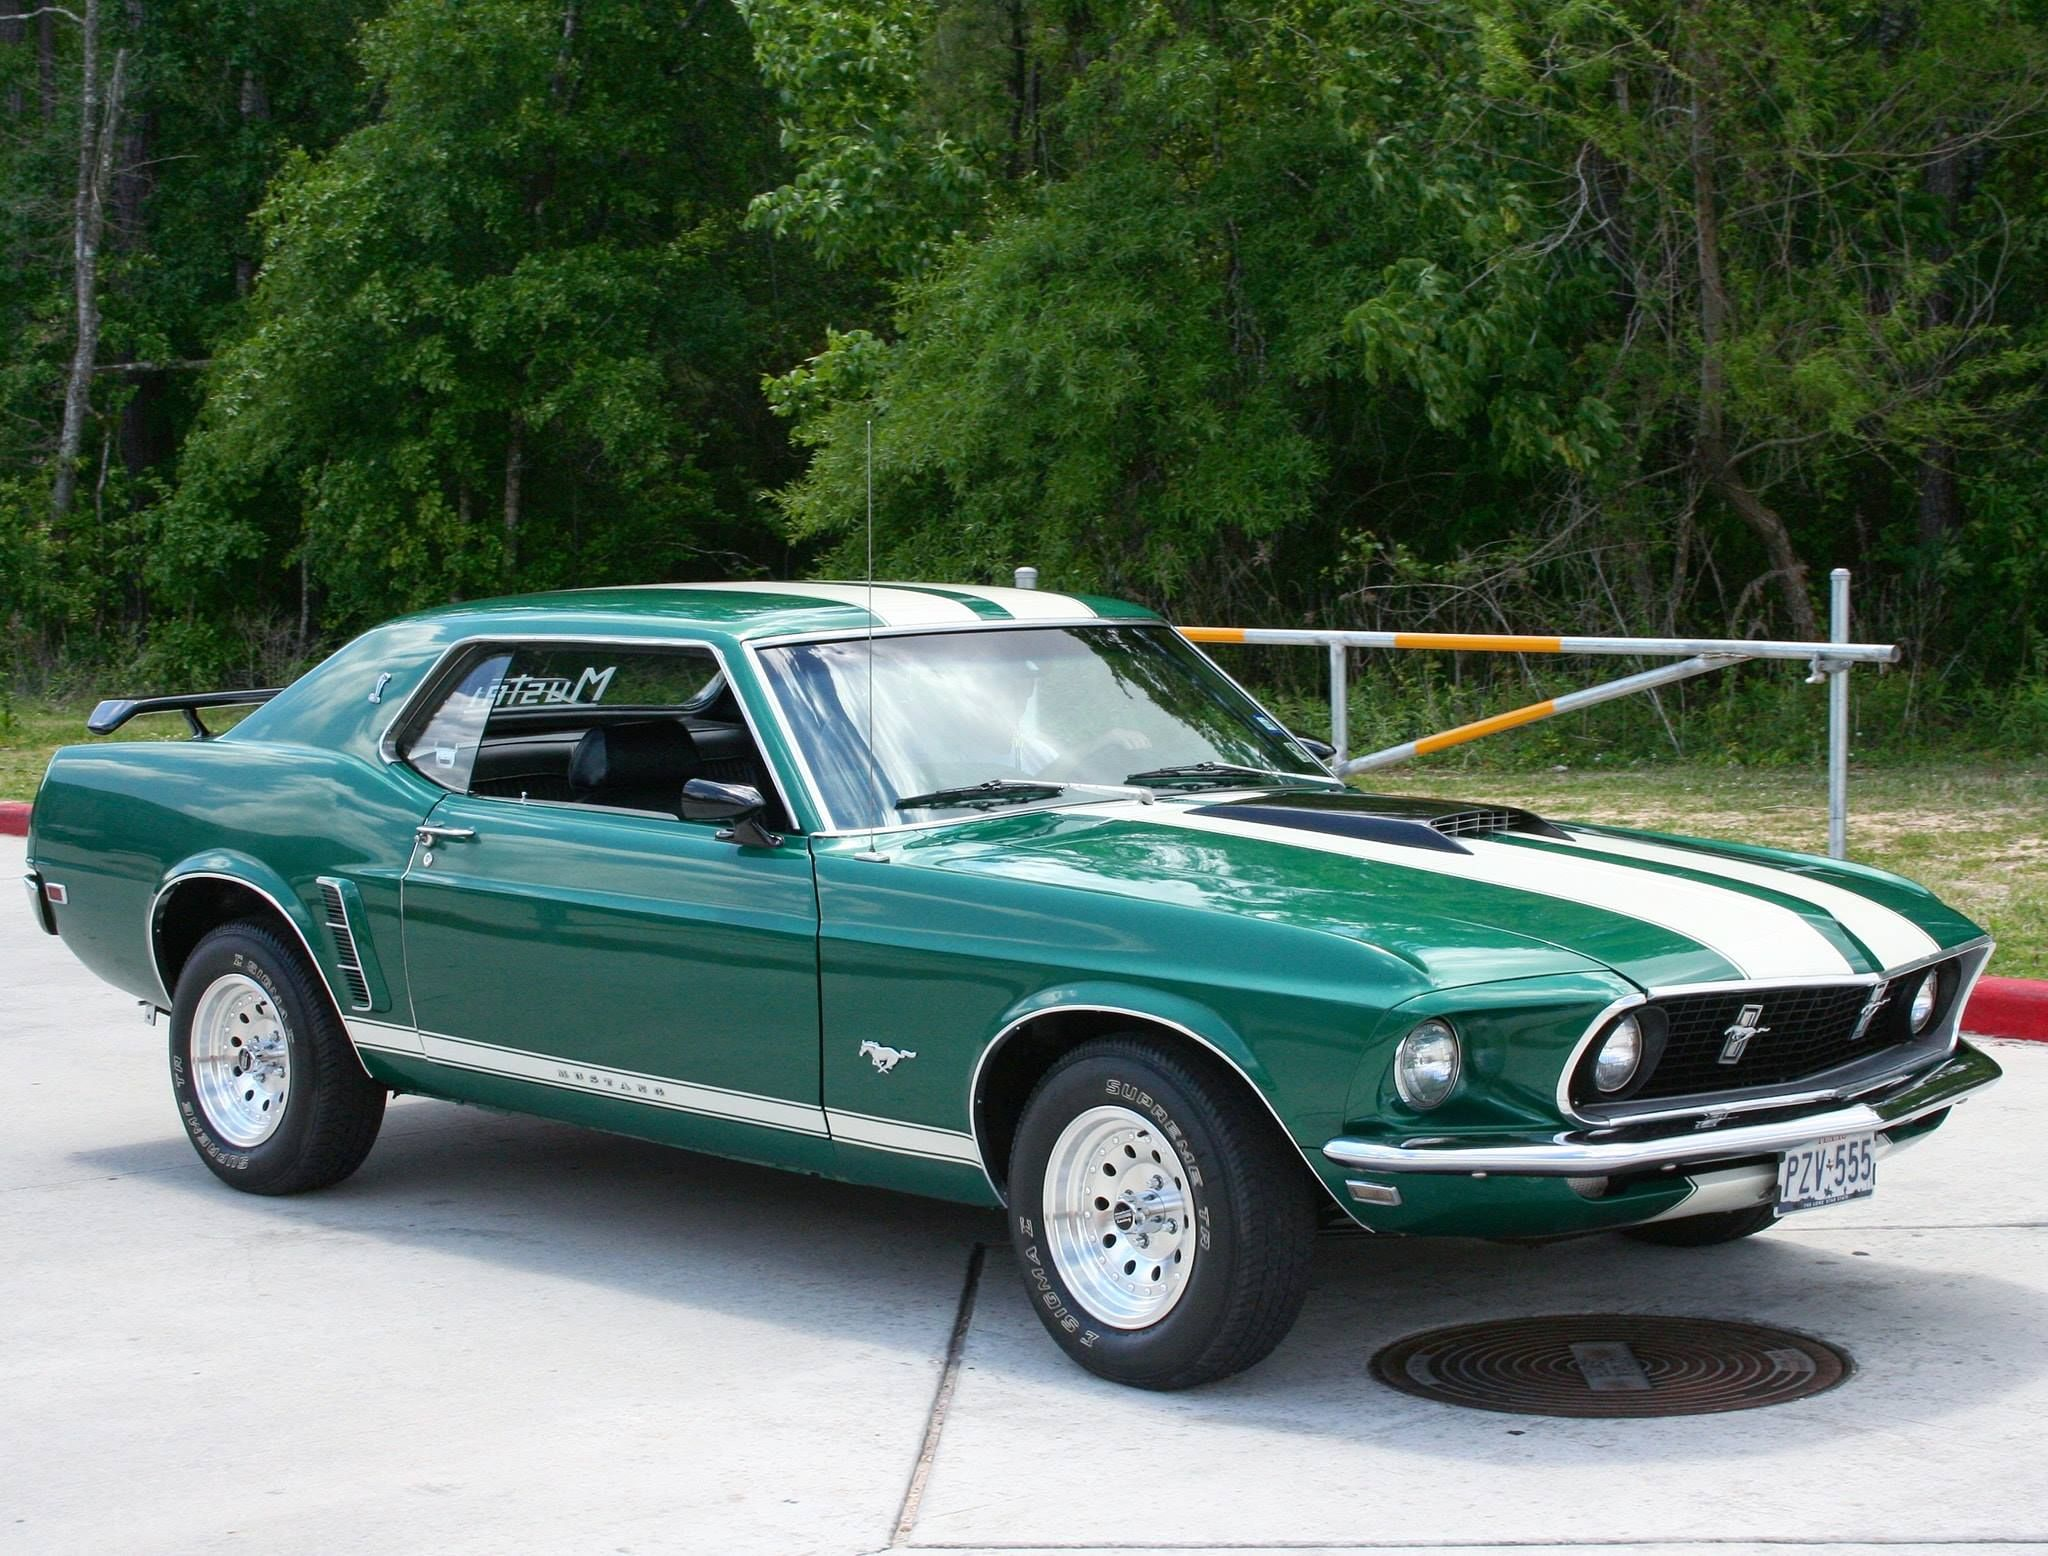 1969 Mustang Coupe In 2020 Ford Mustang Parts Mustang Parts